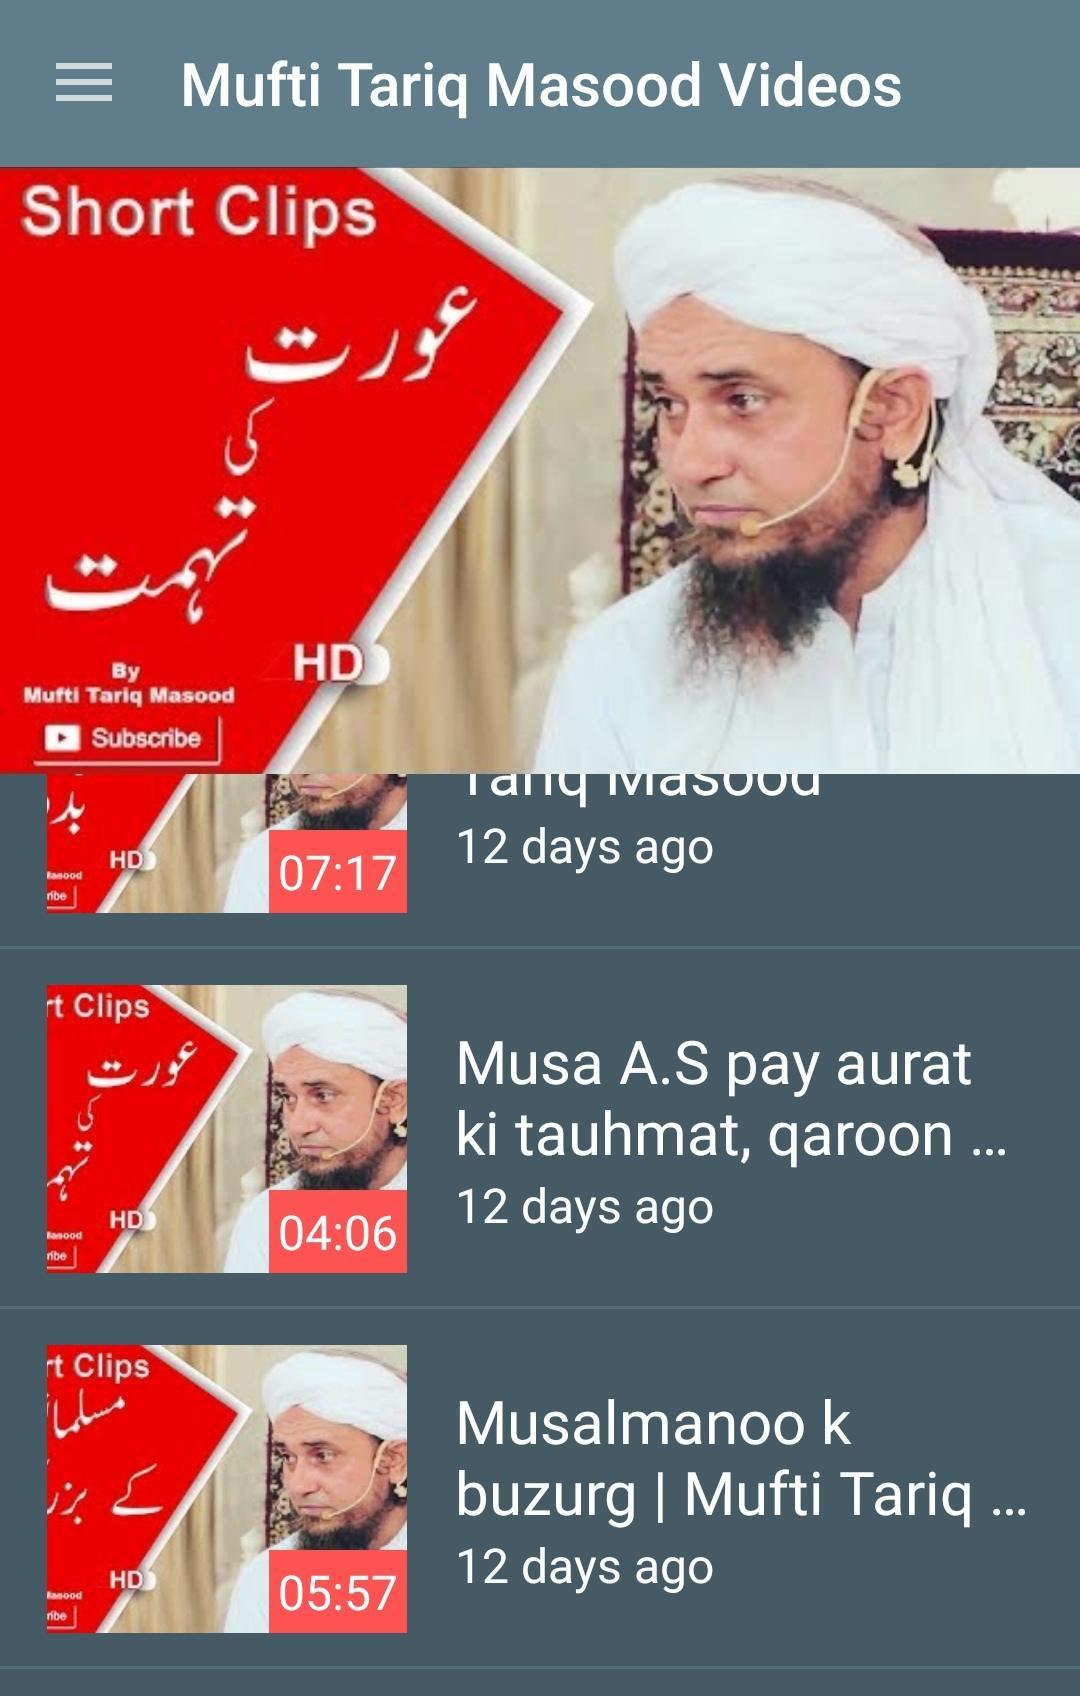 Mufti Tariq Masood Videos for Android - APK Download